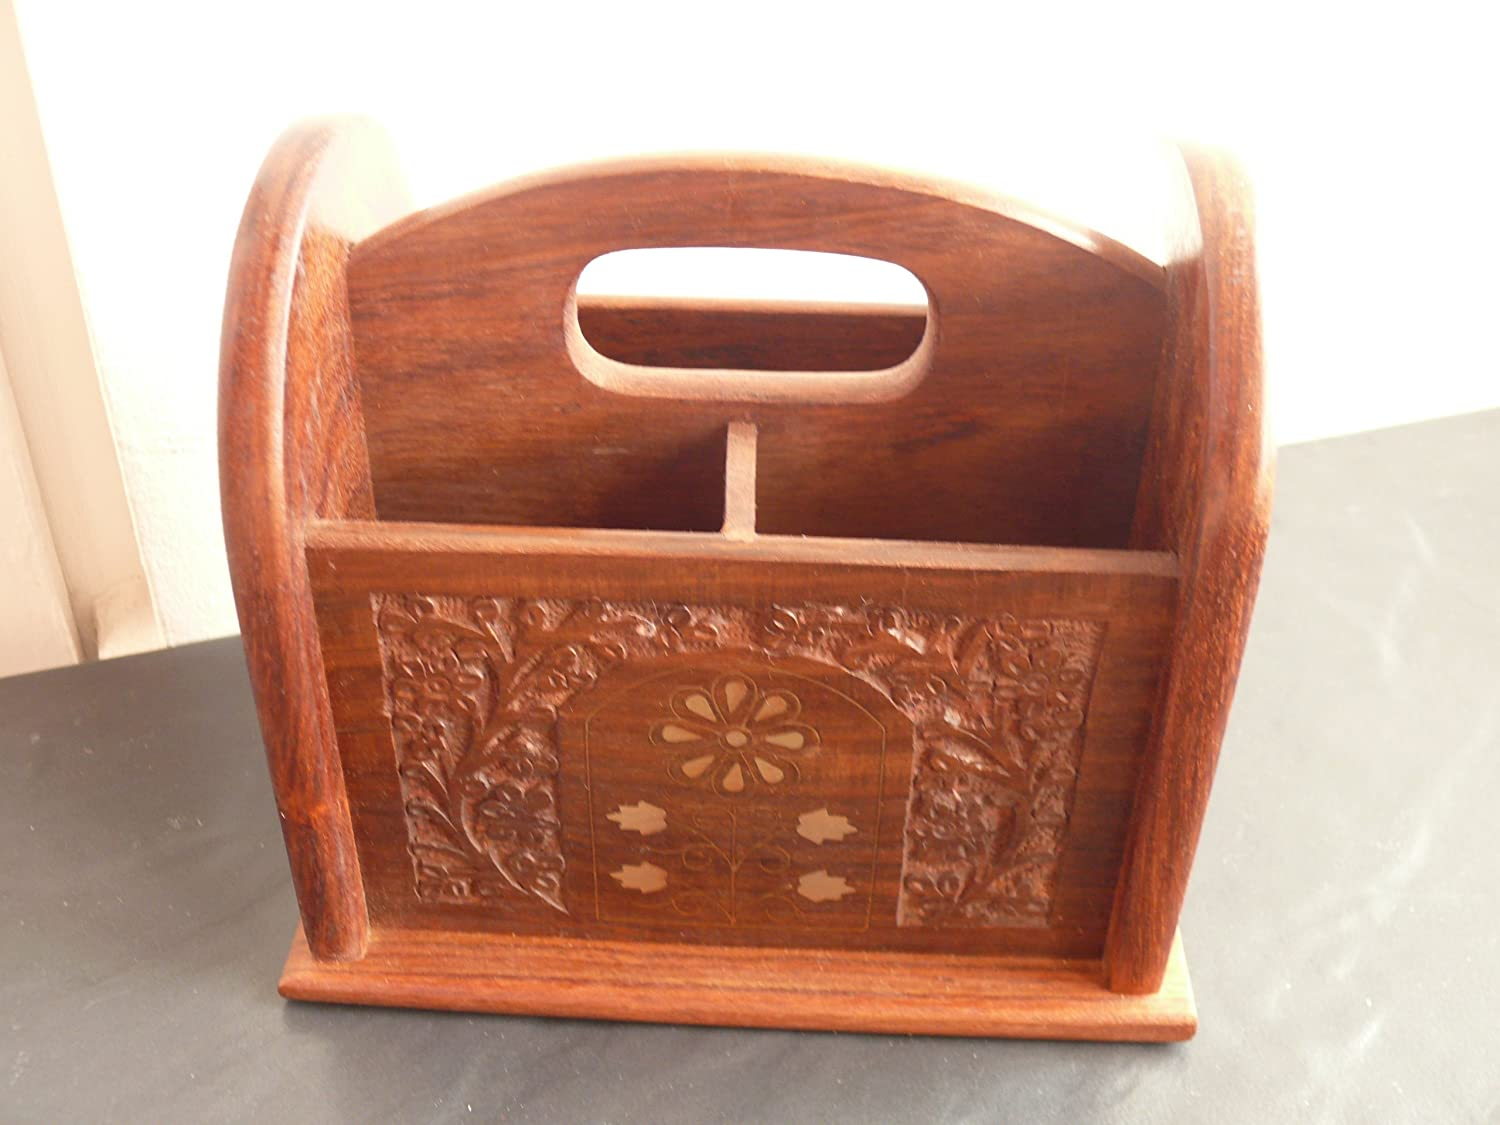 Fairtrade Sheesham wood remote control holder by The Camphor Tree